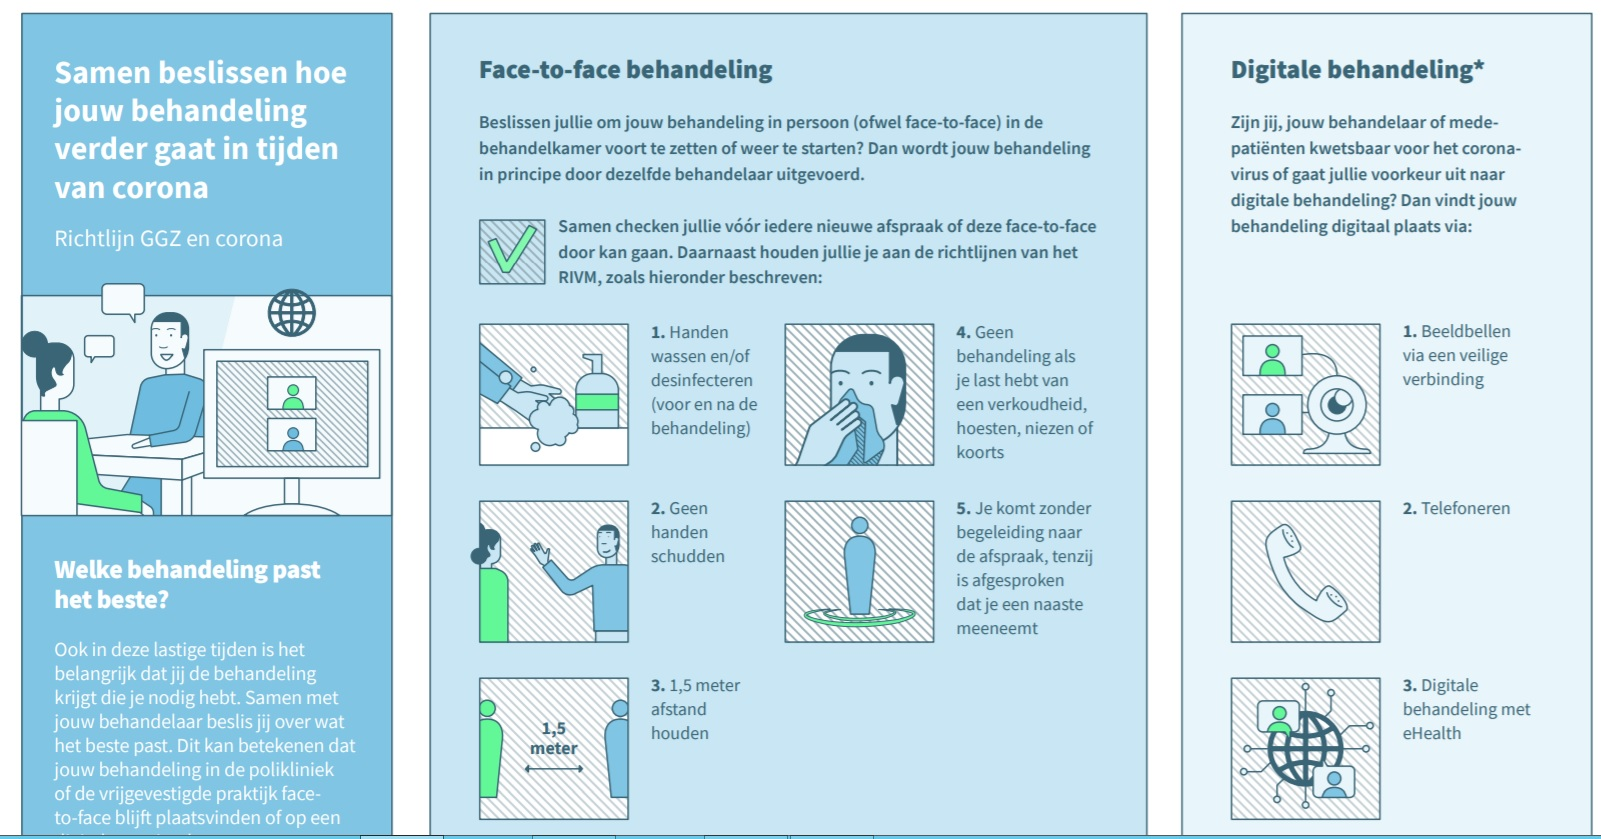 Infographic: 'Digitaal of face-to-face behandelen?'